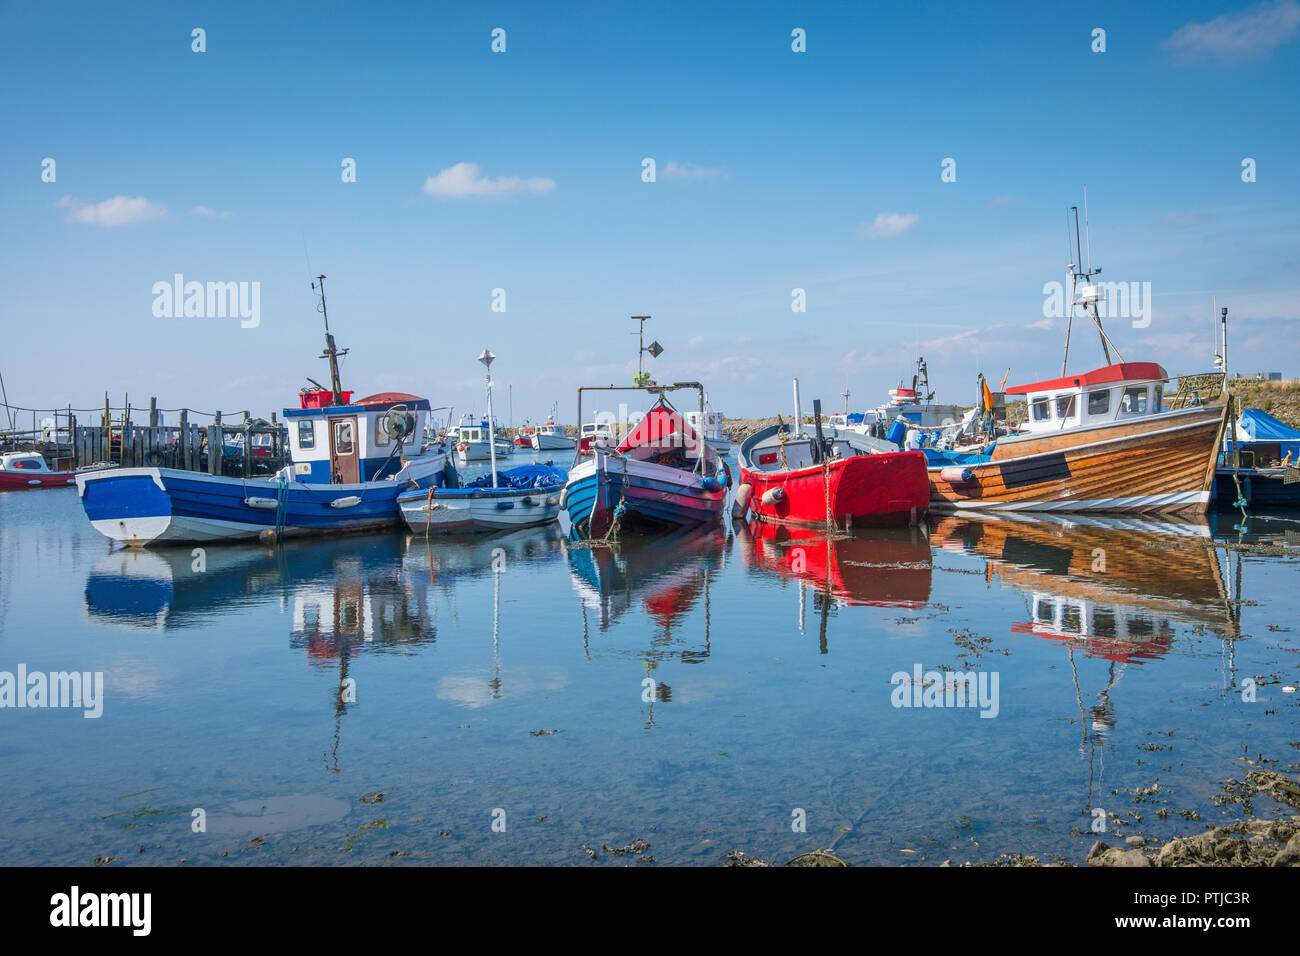 Small fishing boats in Paddys Hole on South Gare which was named for the many Irishmen who helped build the South Gare. - Stock Image